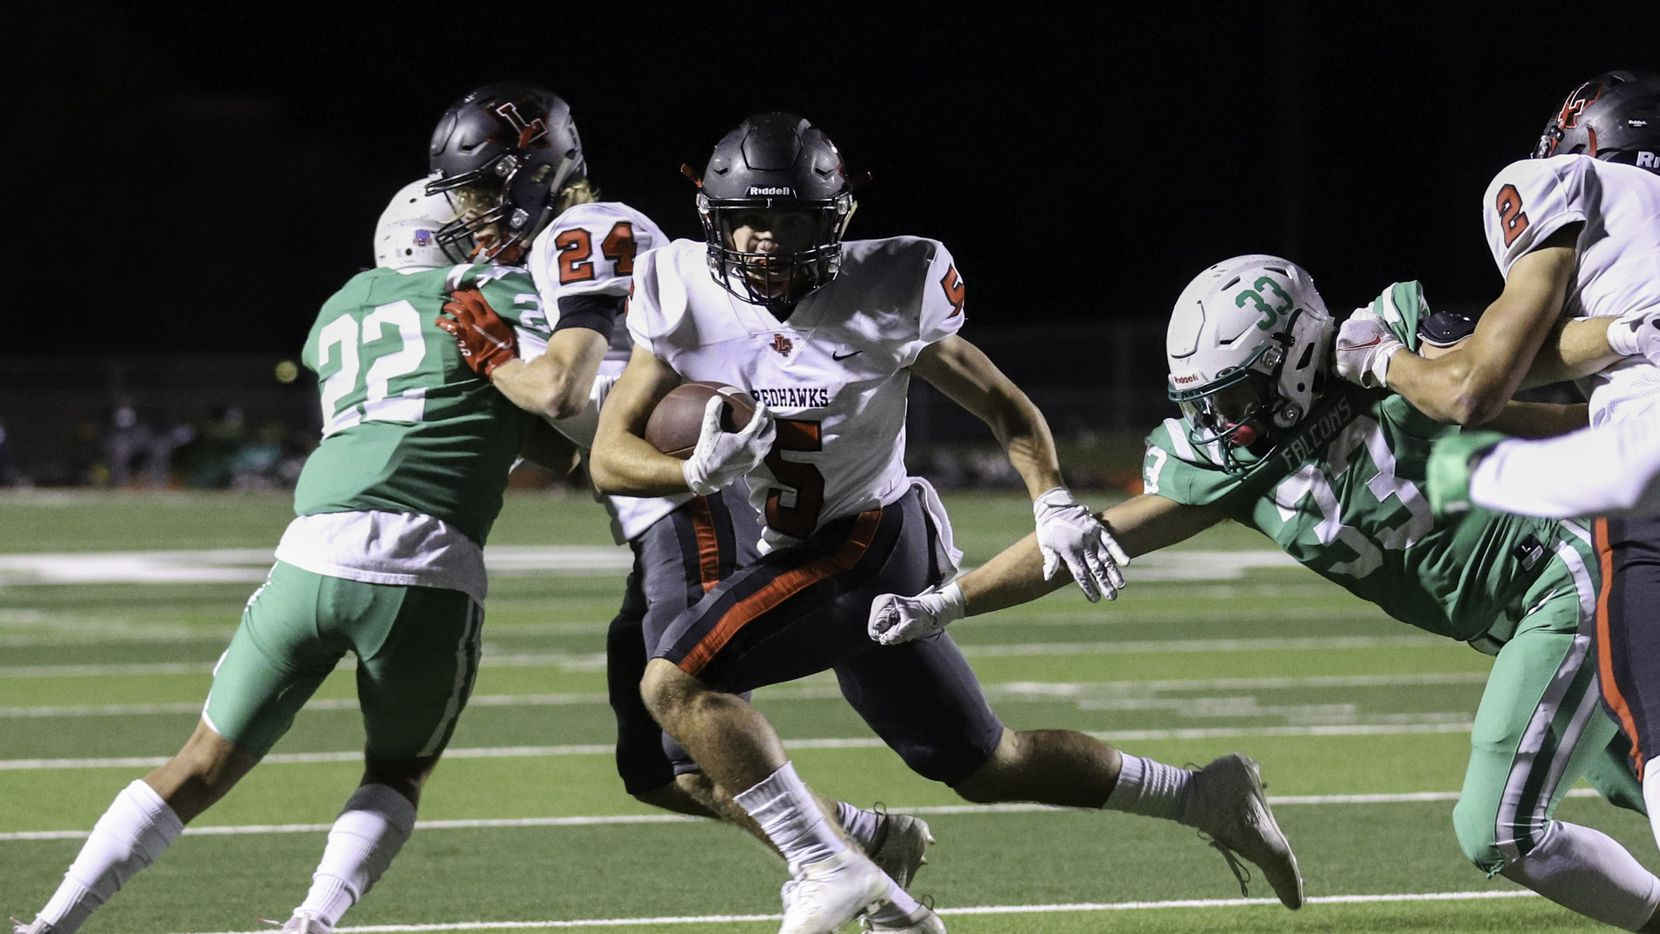 Lake Dallas linebacker Patrick Wenger (33) tries to bring down Frisco Liberty running back Will Ashmore (5) during the first half at Falcon Stadium in Corinth, Texas Friday, October 23, 2020.